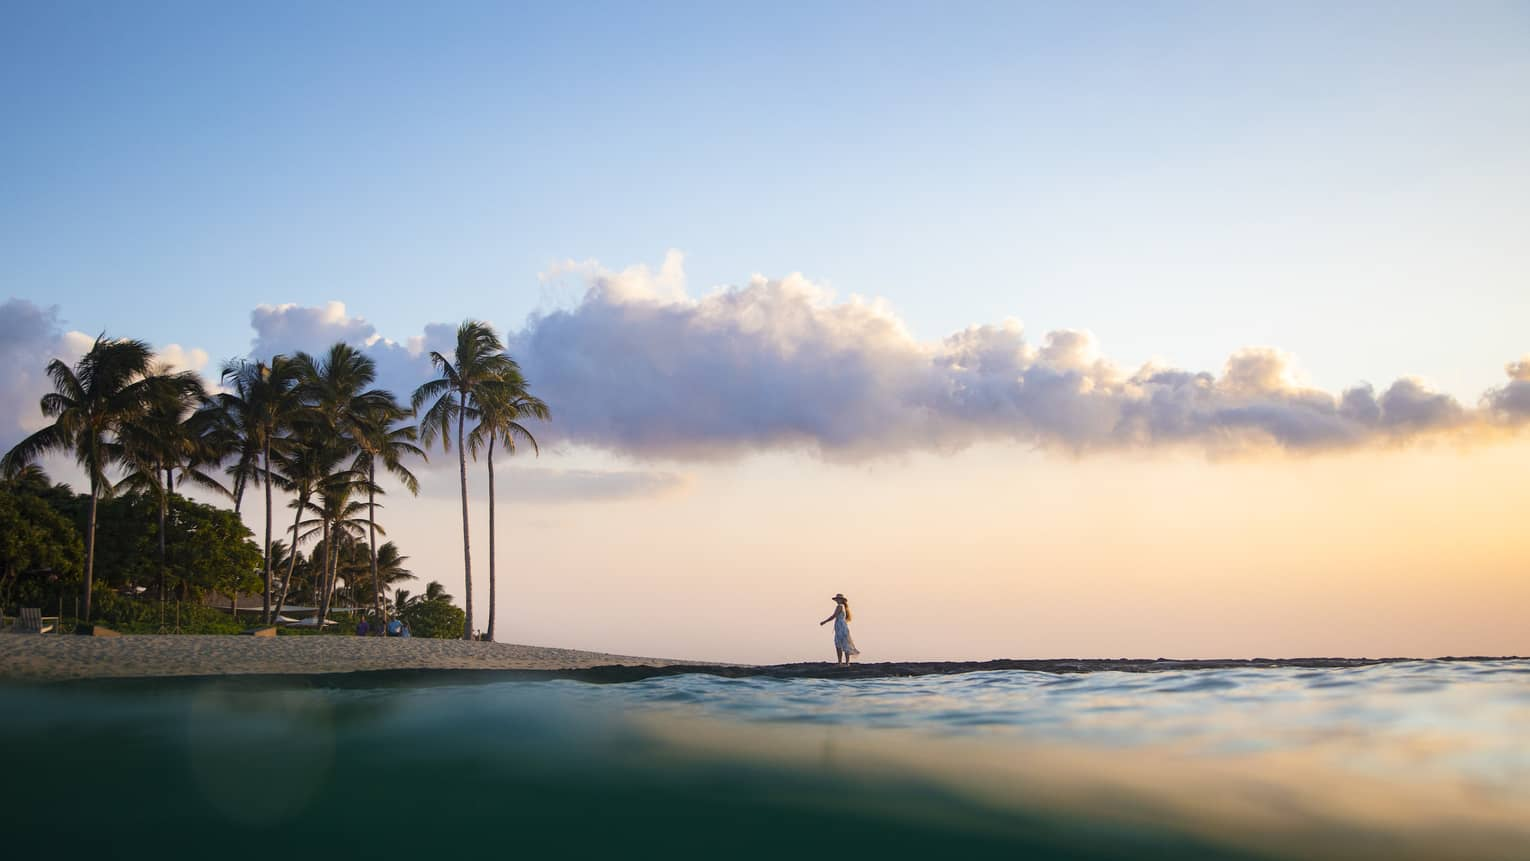 A woman walks along the beach at sunrise with palm trees on the sand